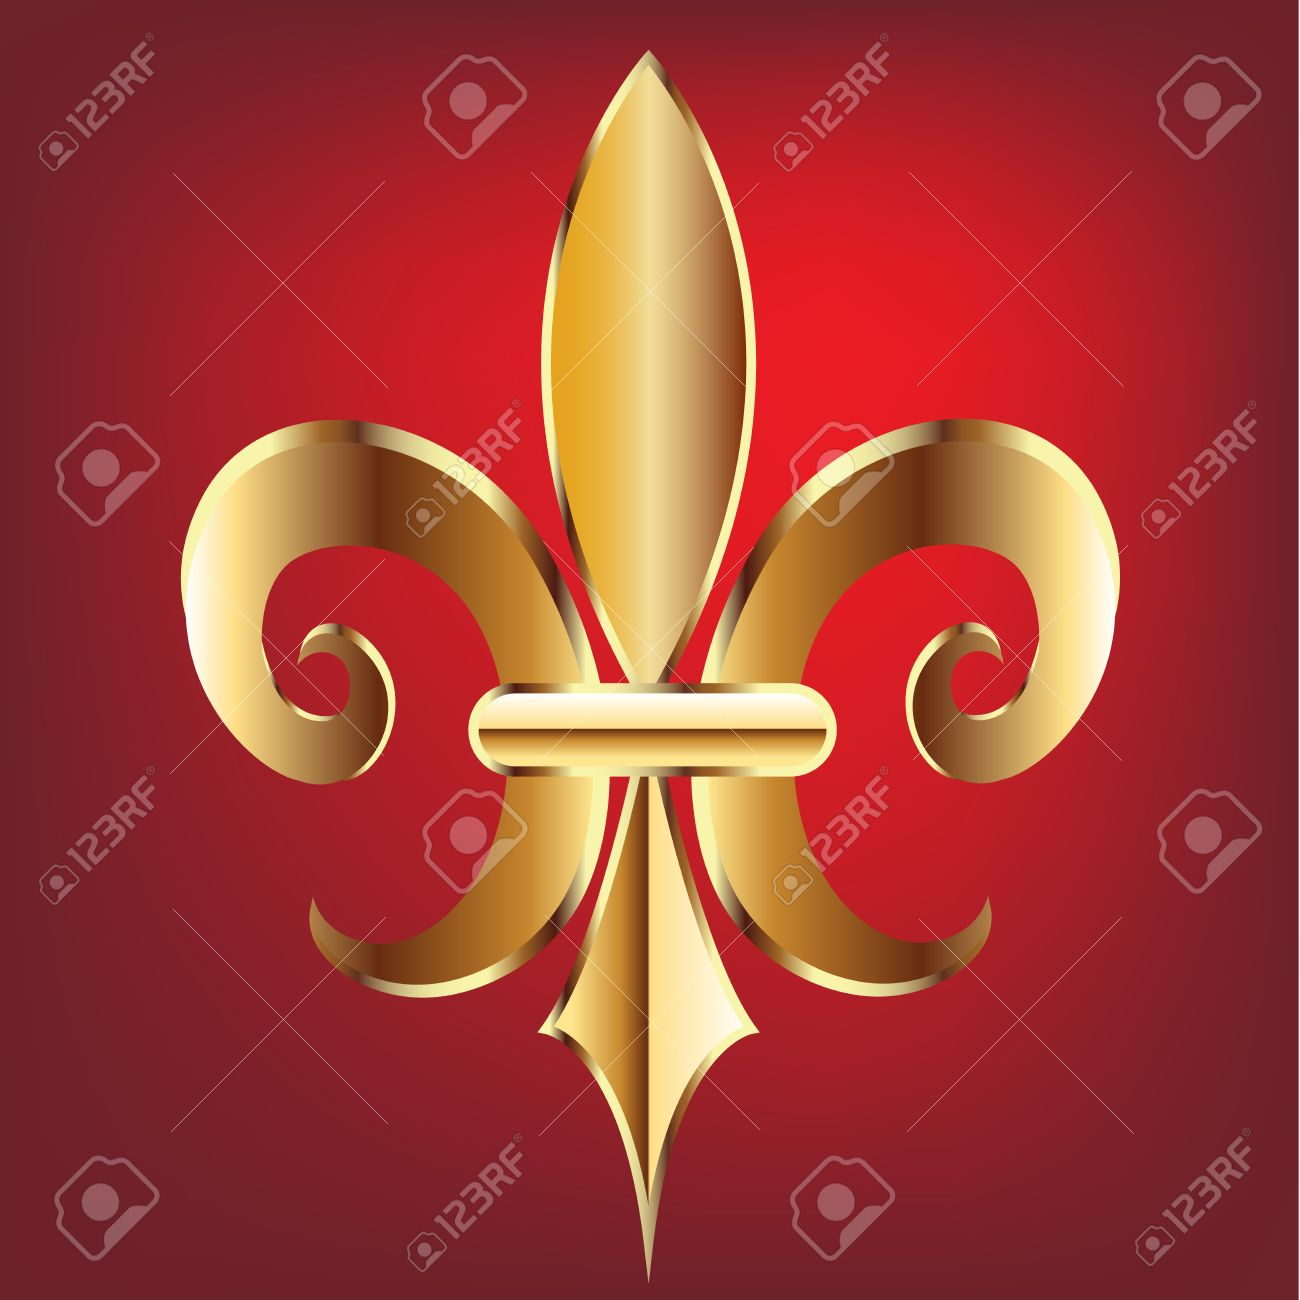 fleur de lis new orleans gold symbol flower logo template royalty